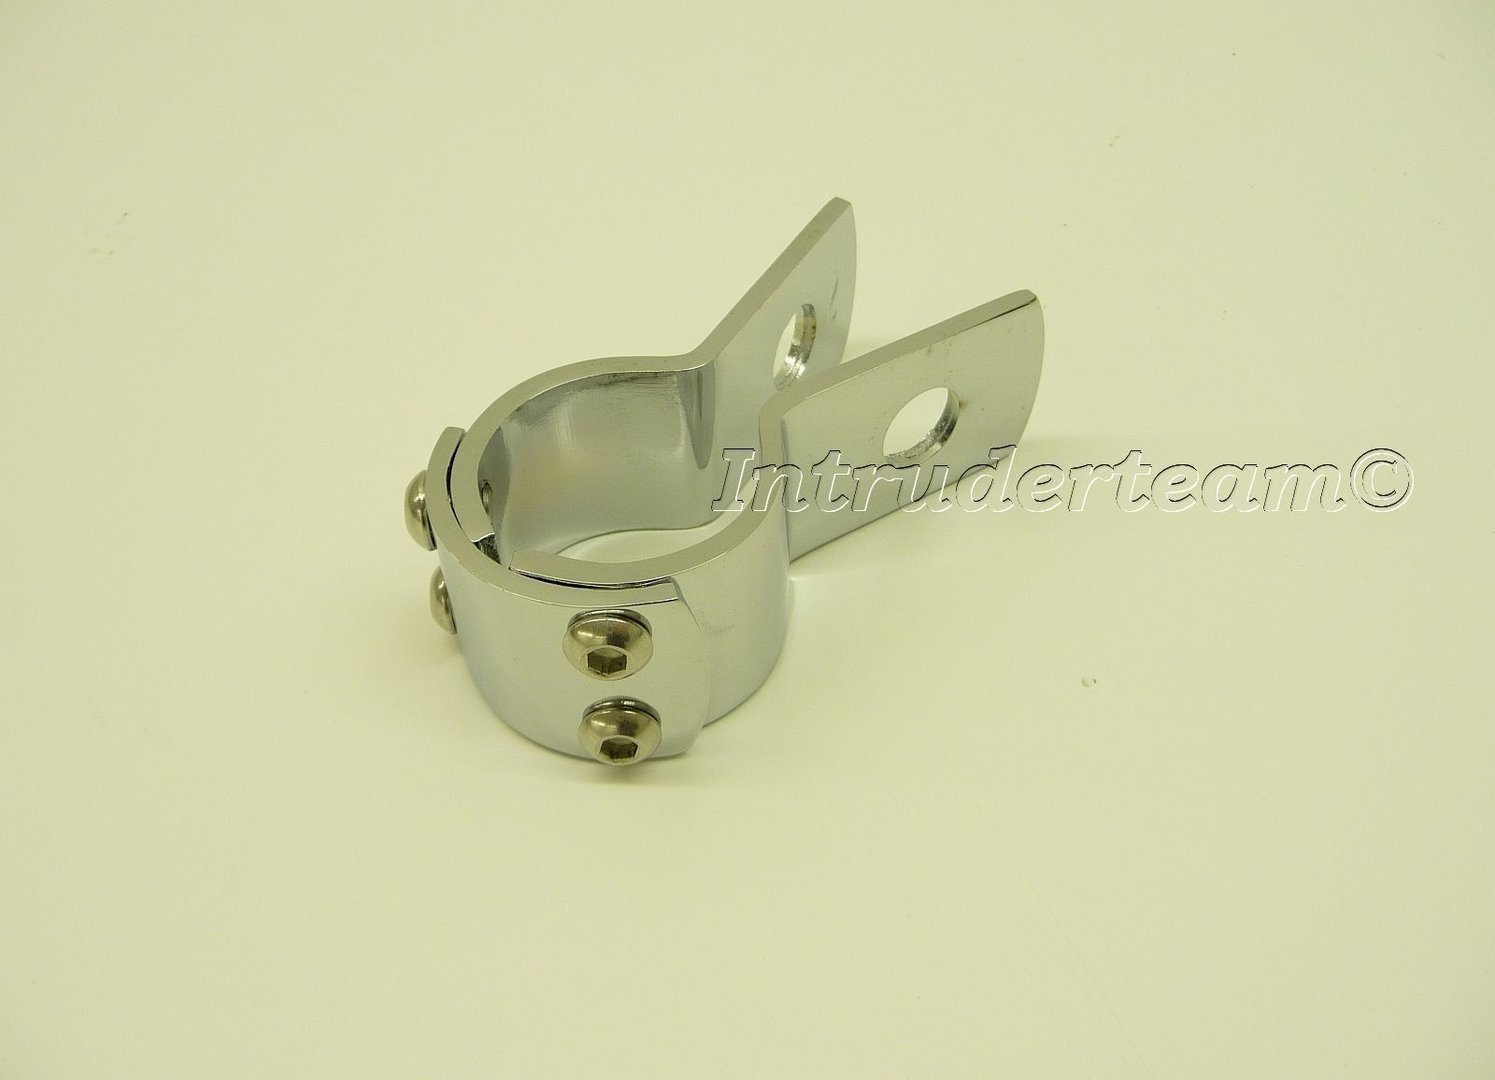 Klemme Clamps Ideal z. Bsp.: bei Fußrastenmontage Ø32mm